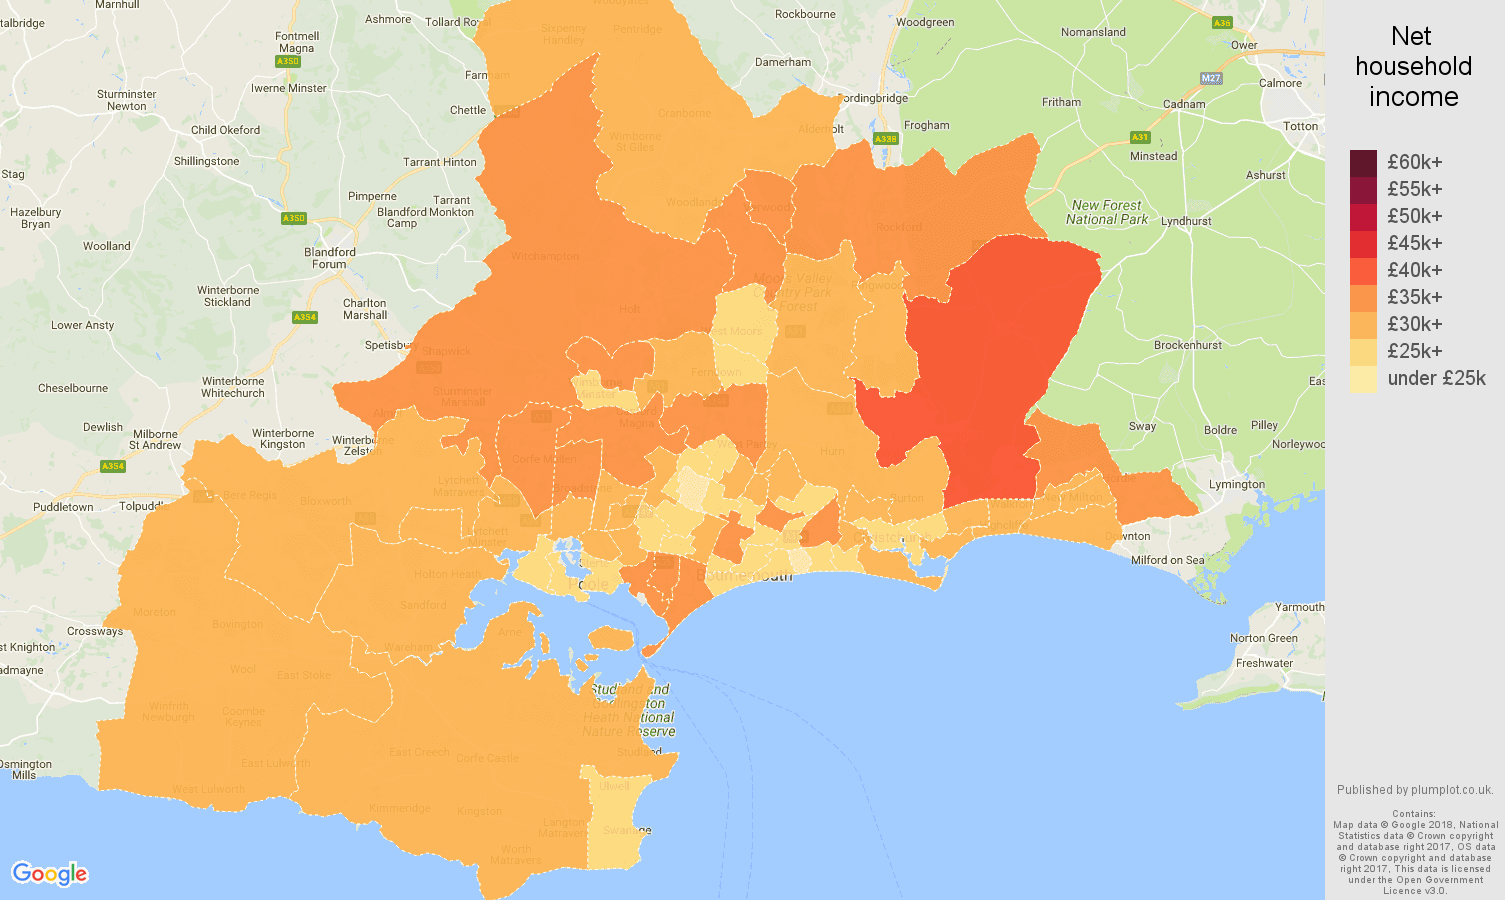 Bournemouth net household income map